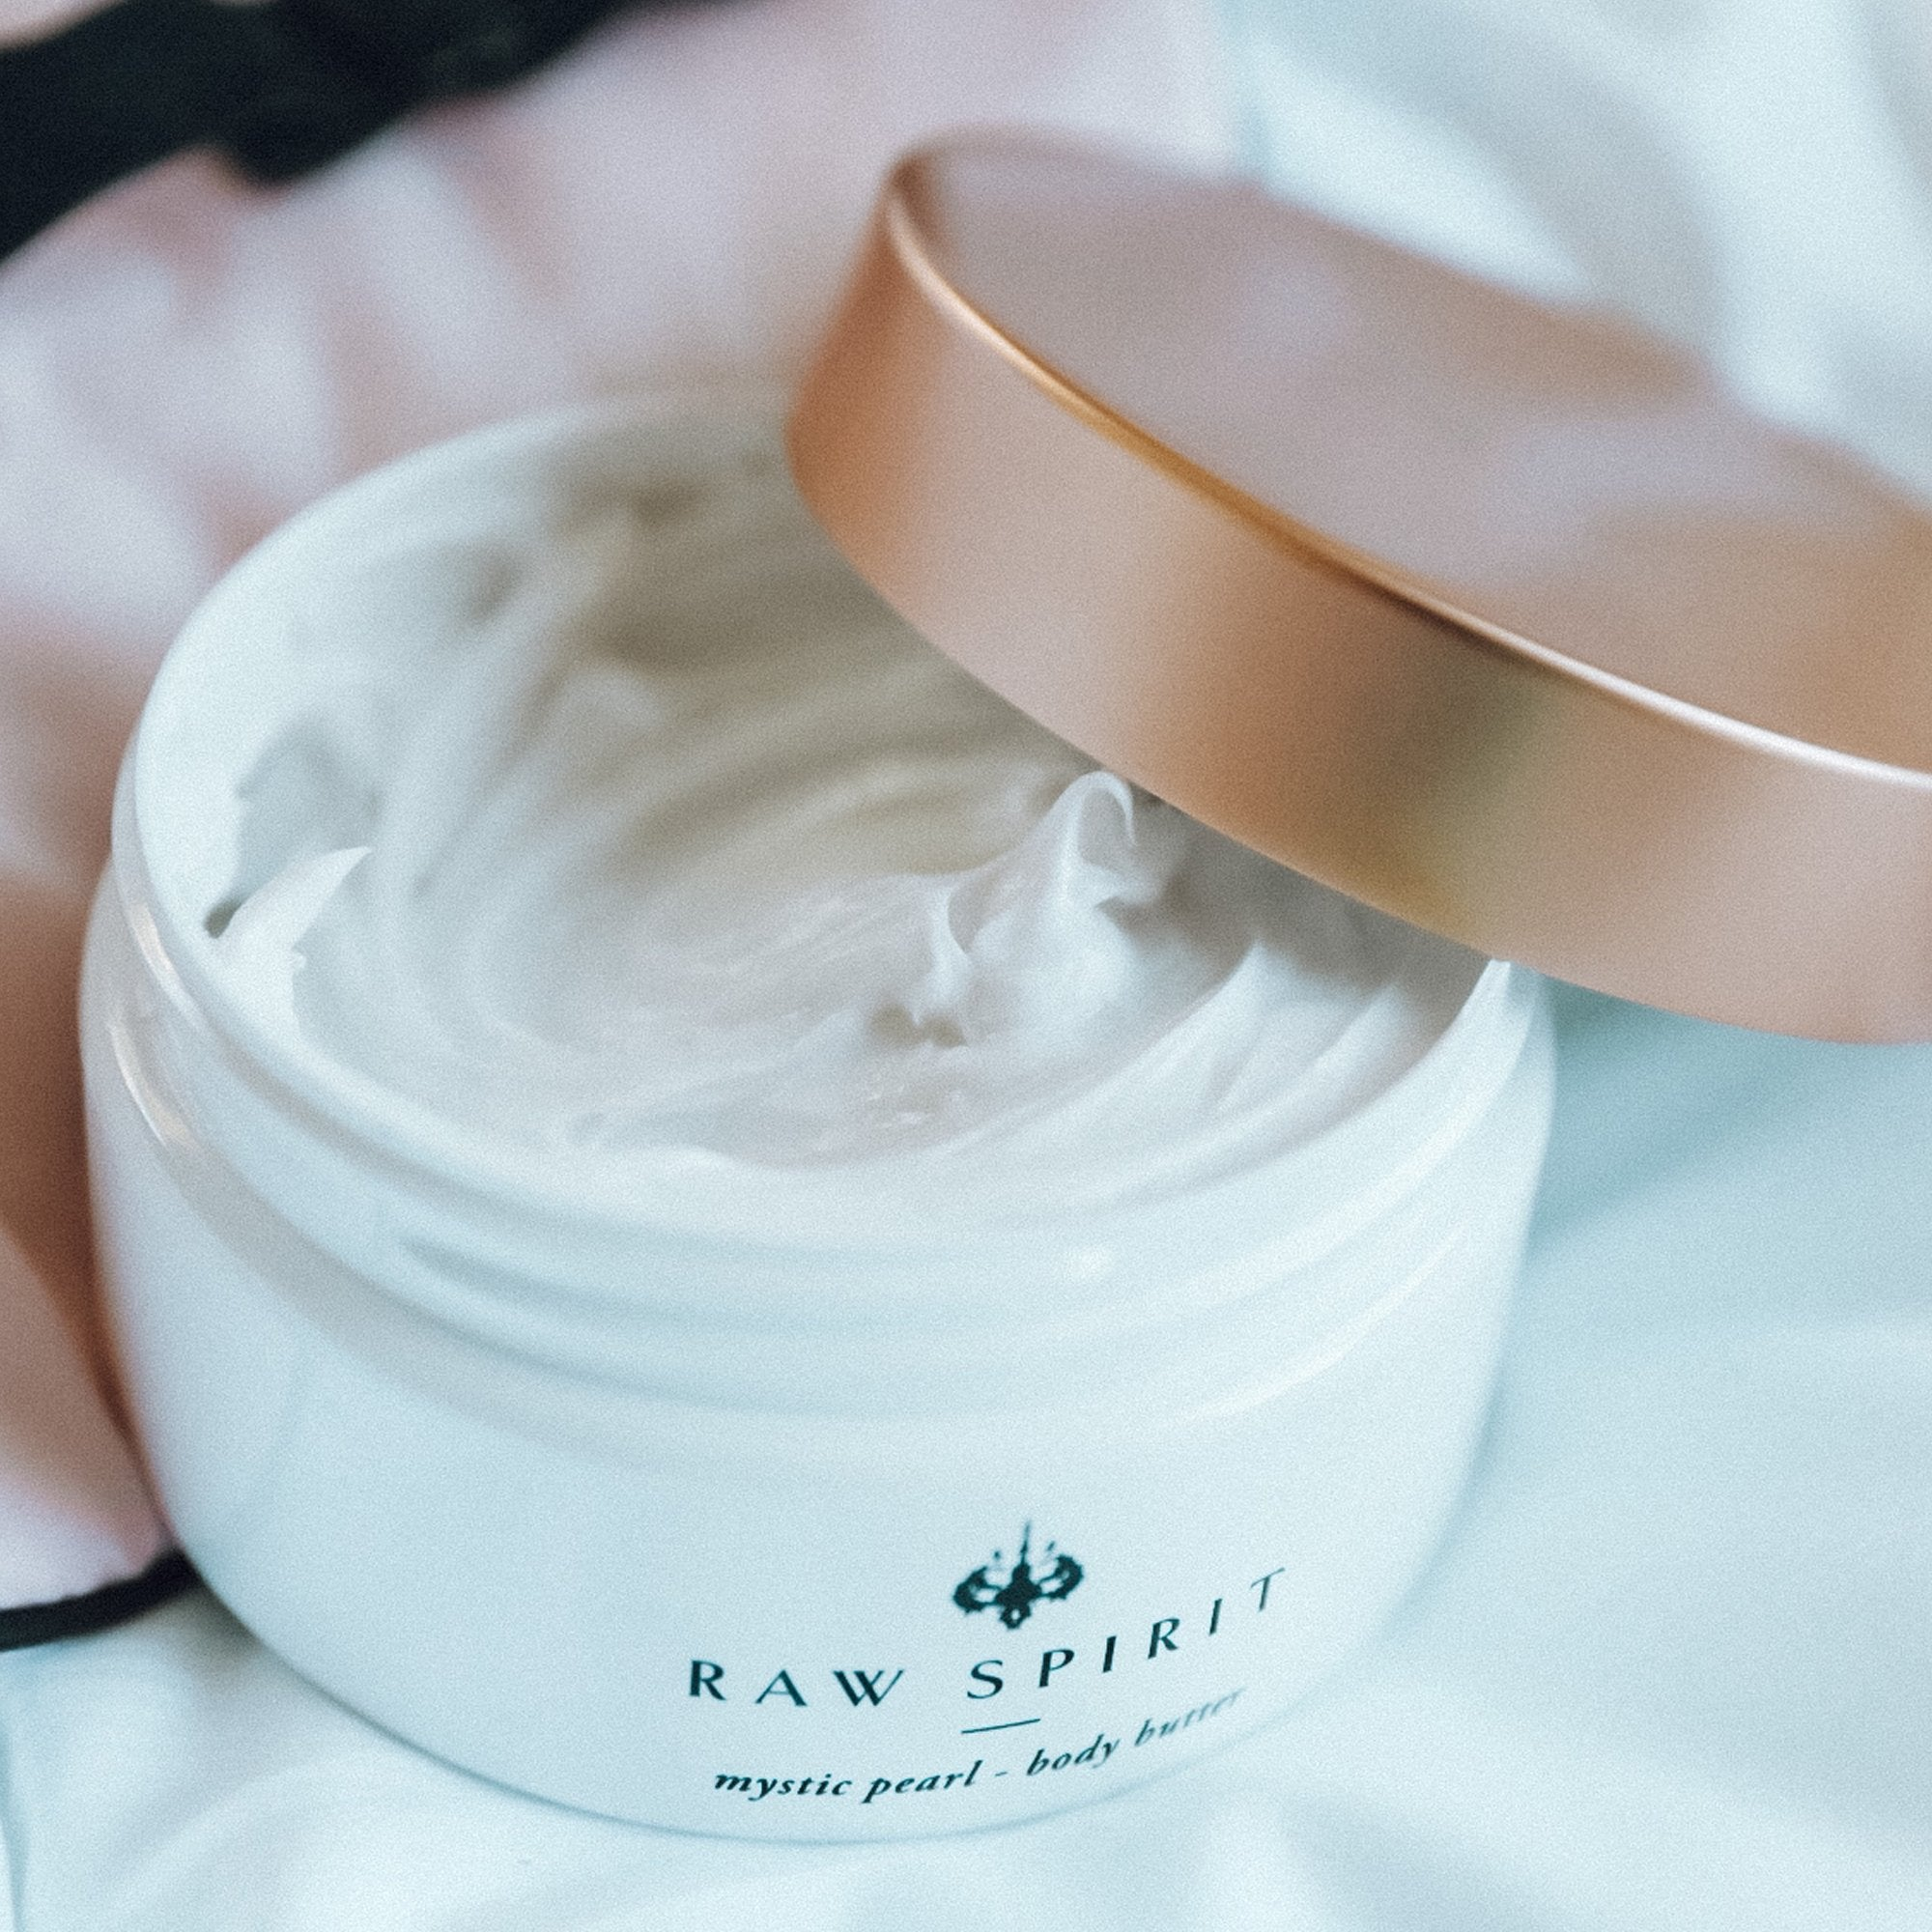 Raw Spirit Mystic Pearl Scented Body Butter is a rich floral scented moisturizer with notes of clove, cinnamon, frangipani, and jasmine.